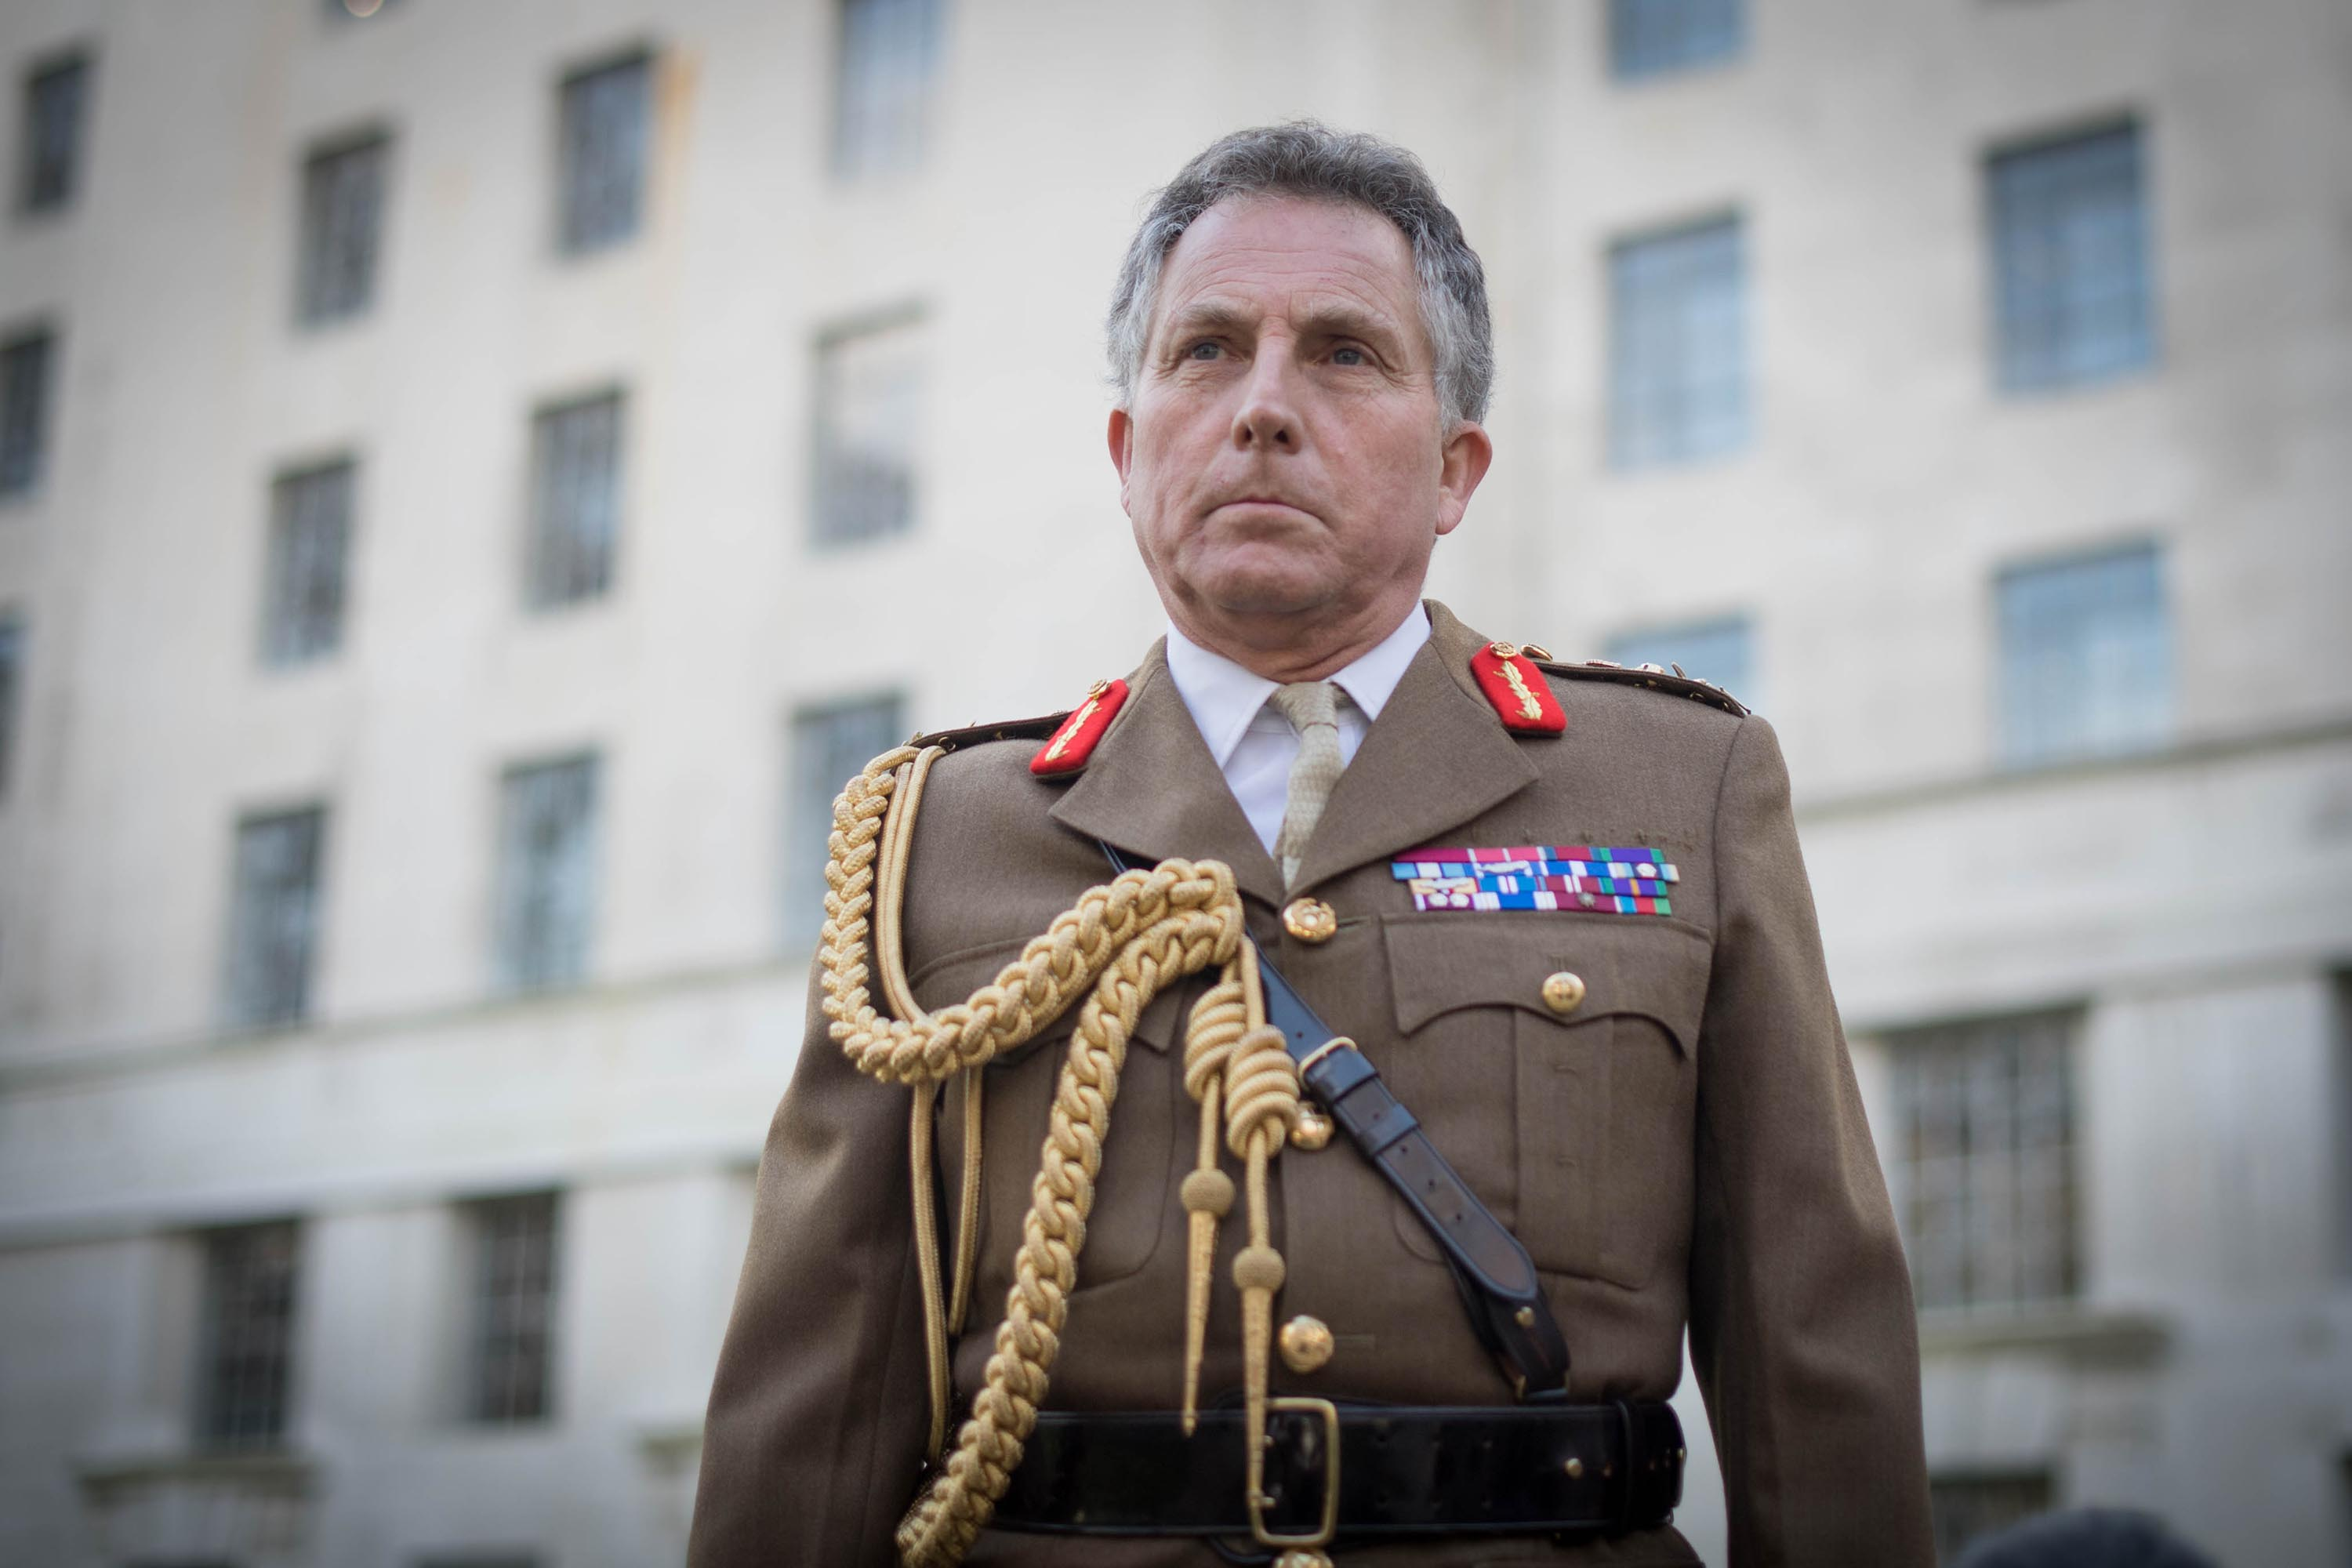 British Chief of Defence Staff Nick Carter is pictured outside the Ministry of Defence headquarters in London, in November 2020.